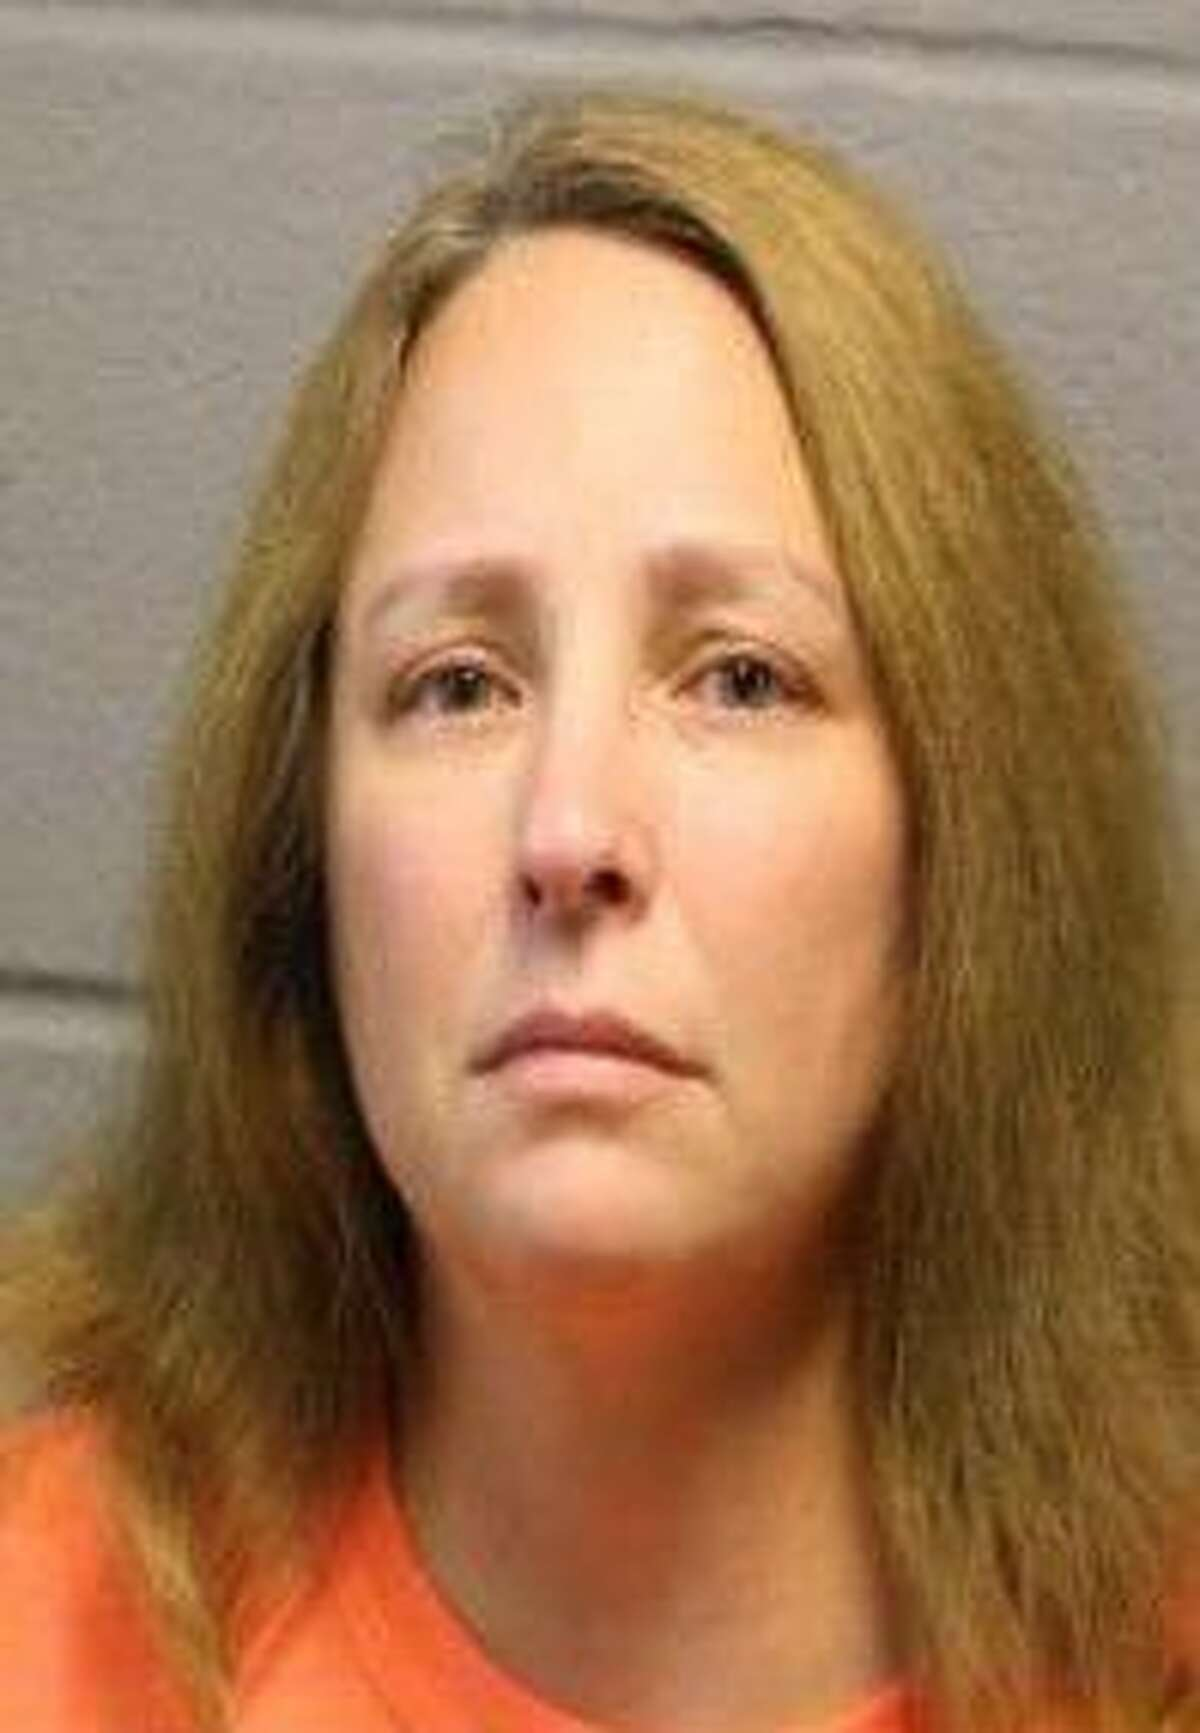 Pearland resident Lori Ann LoPresti, 45, was arrested and booked into the Harris County Jail on Wednesday, June 9. She is currently being held on a $30,000 bail on felony charges of Aggravated Sexual Assault of a Child under 14 years old.